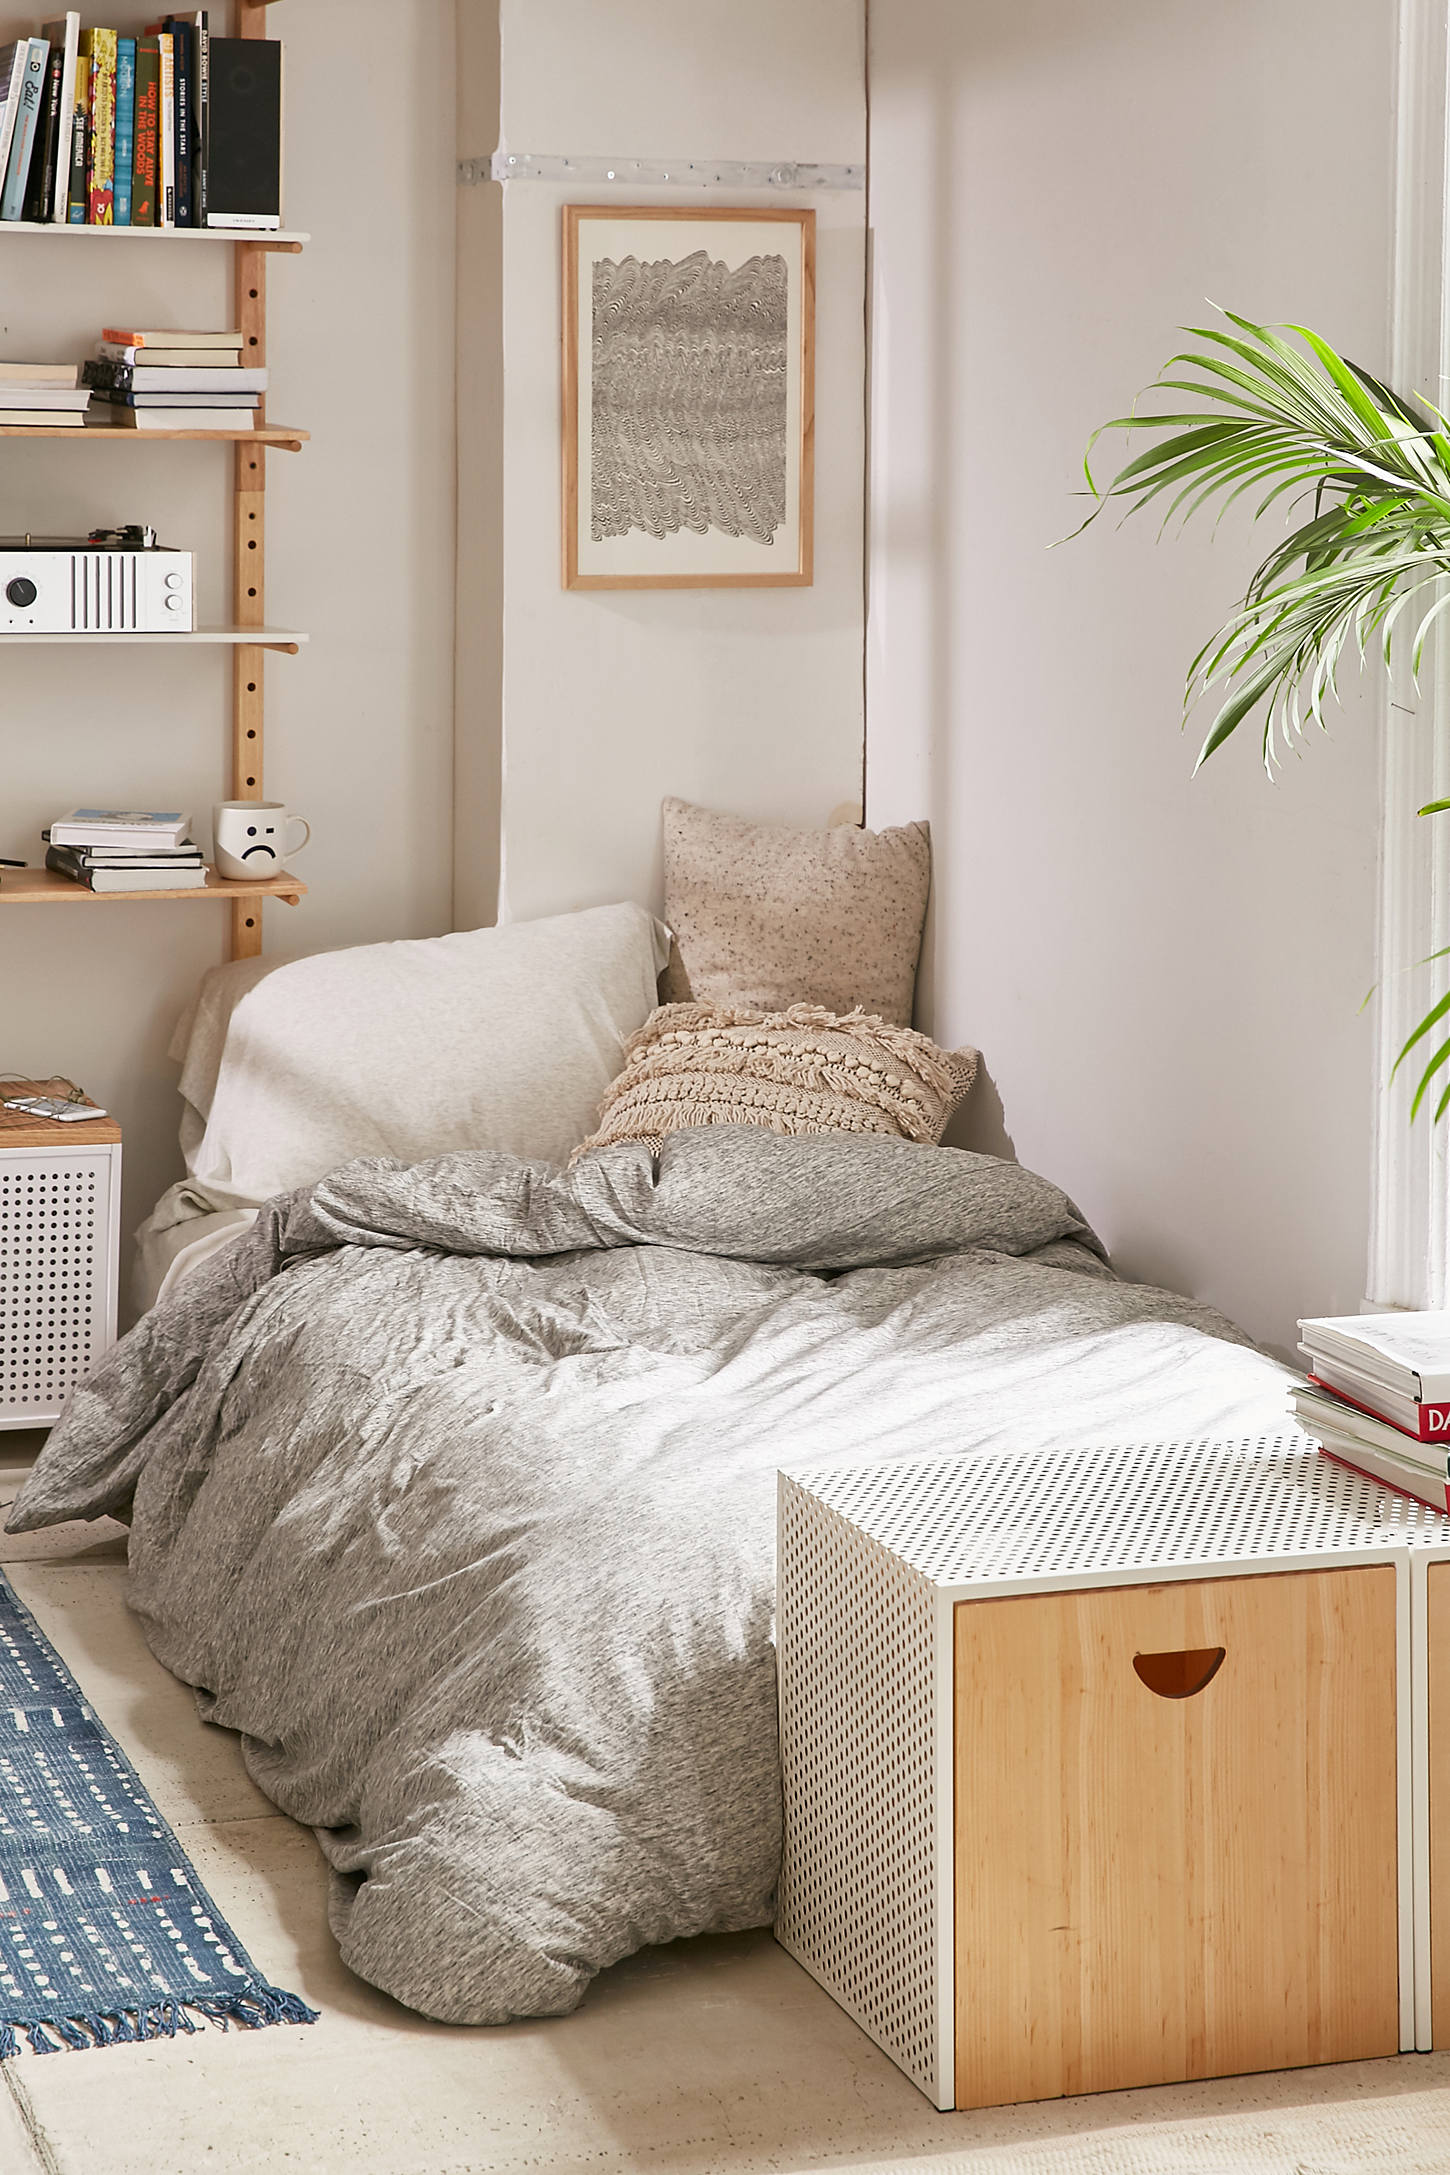 Snooze Bedroom Furniture T Shirt Jersey Duvet Snooze Set Urban Outfitters